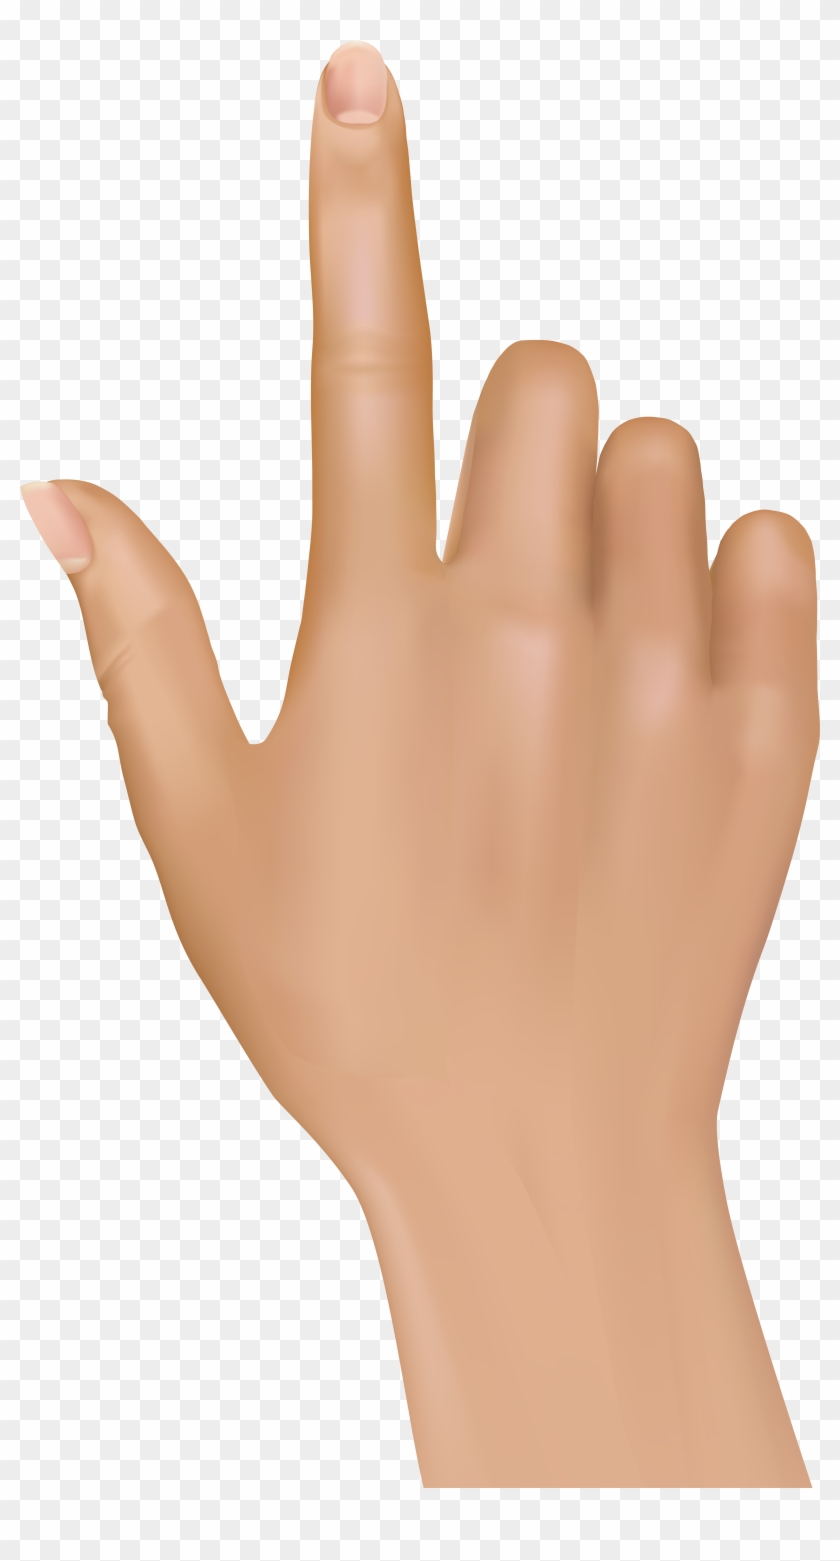 Tuching Finger Hand Png Clip Art - Hand Png #18992